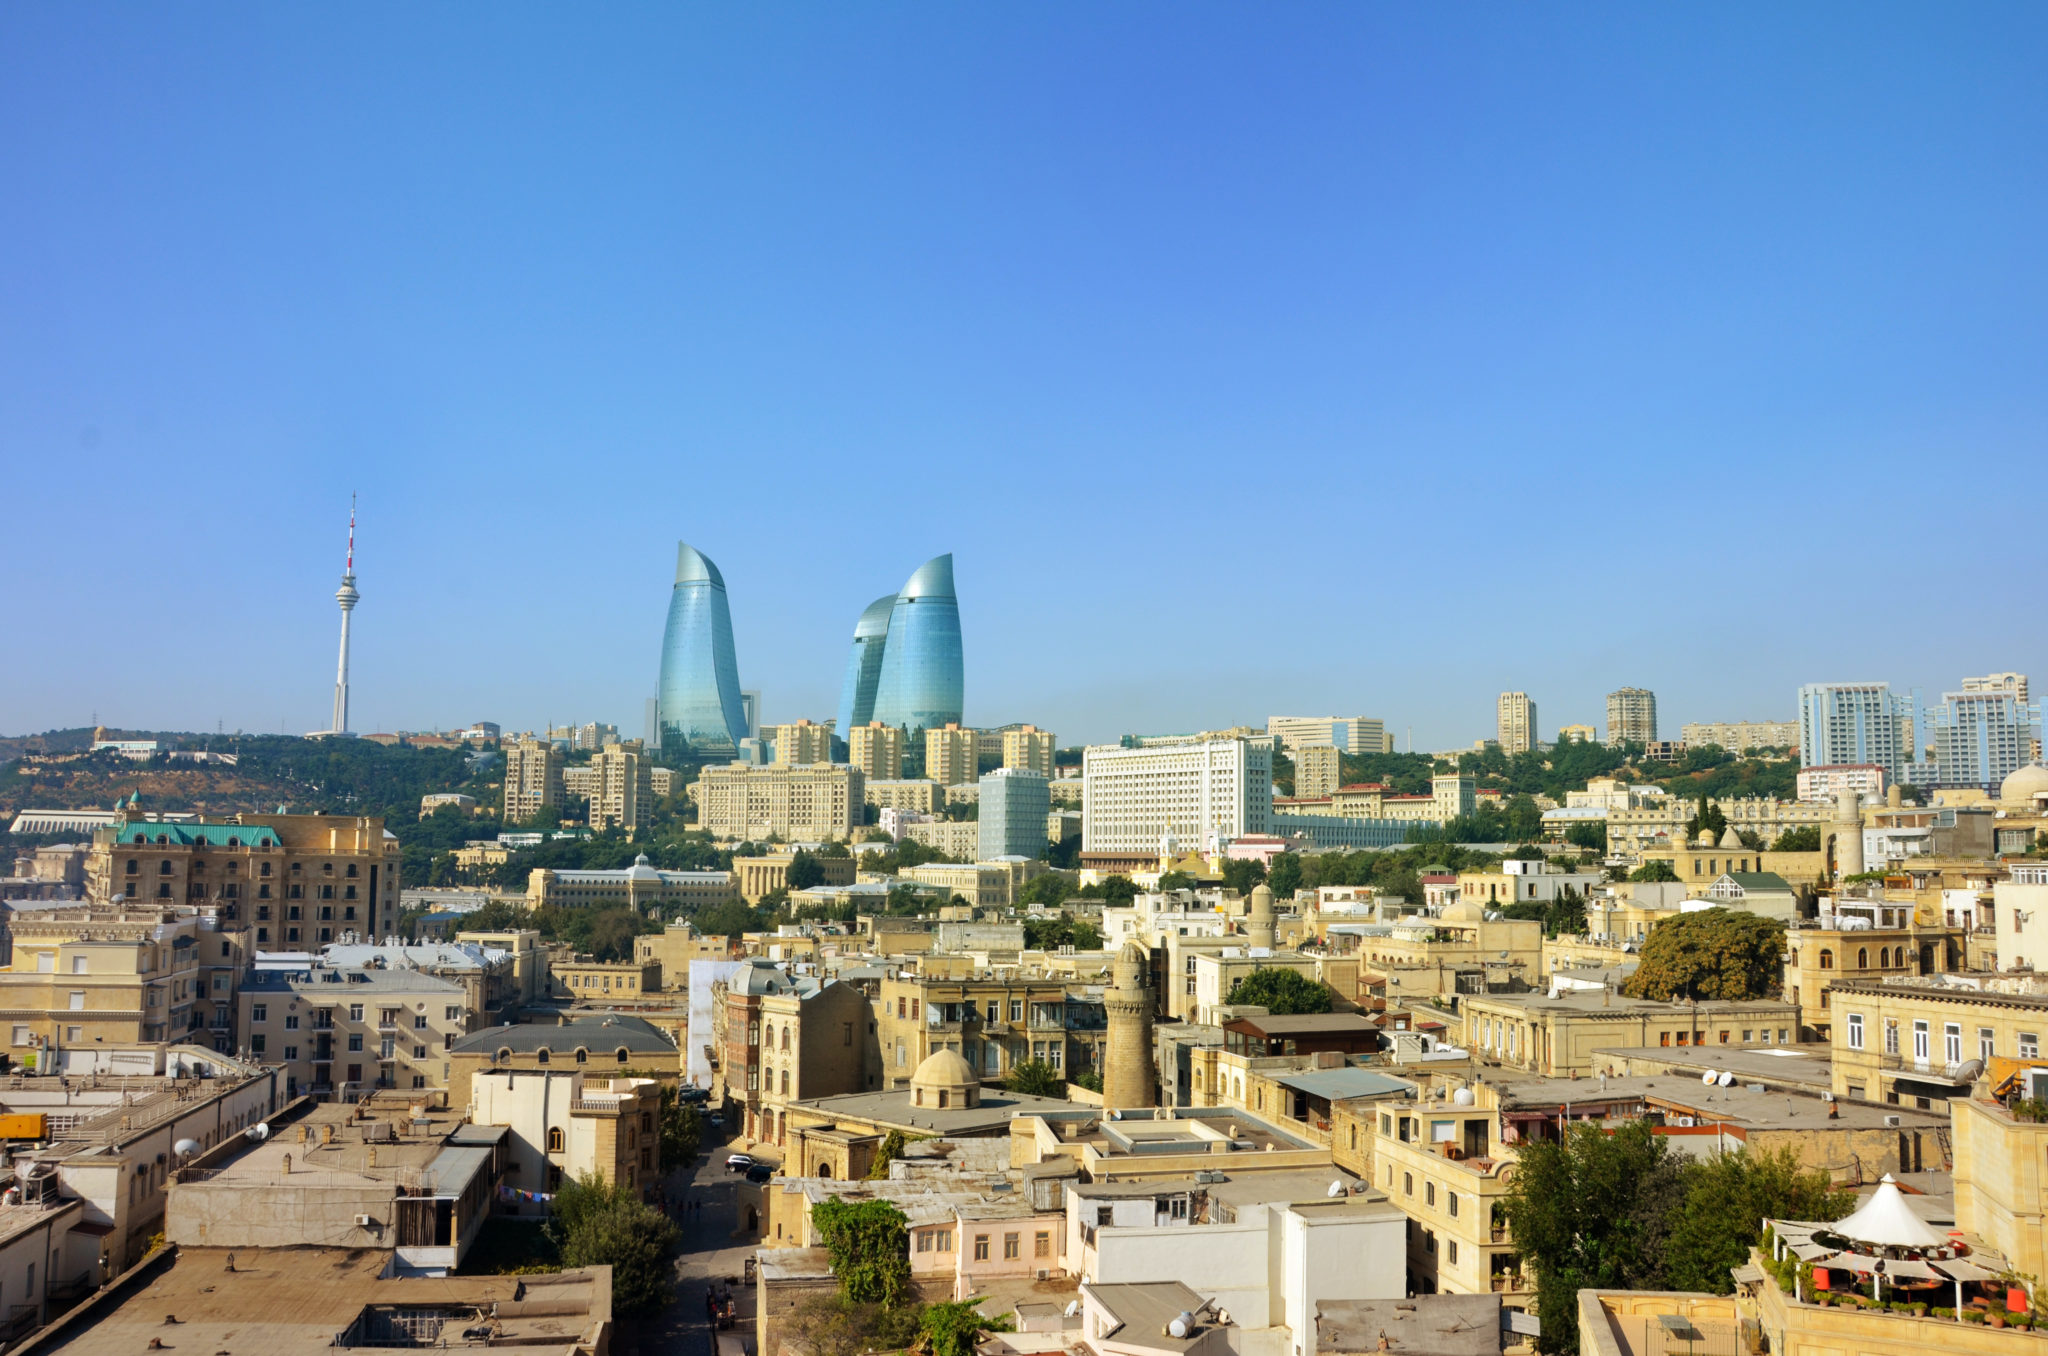 Visit Azerbaijan: Tips, highlights and the best things to see